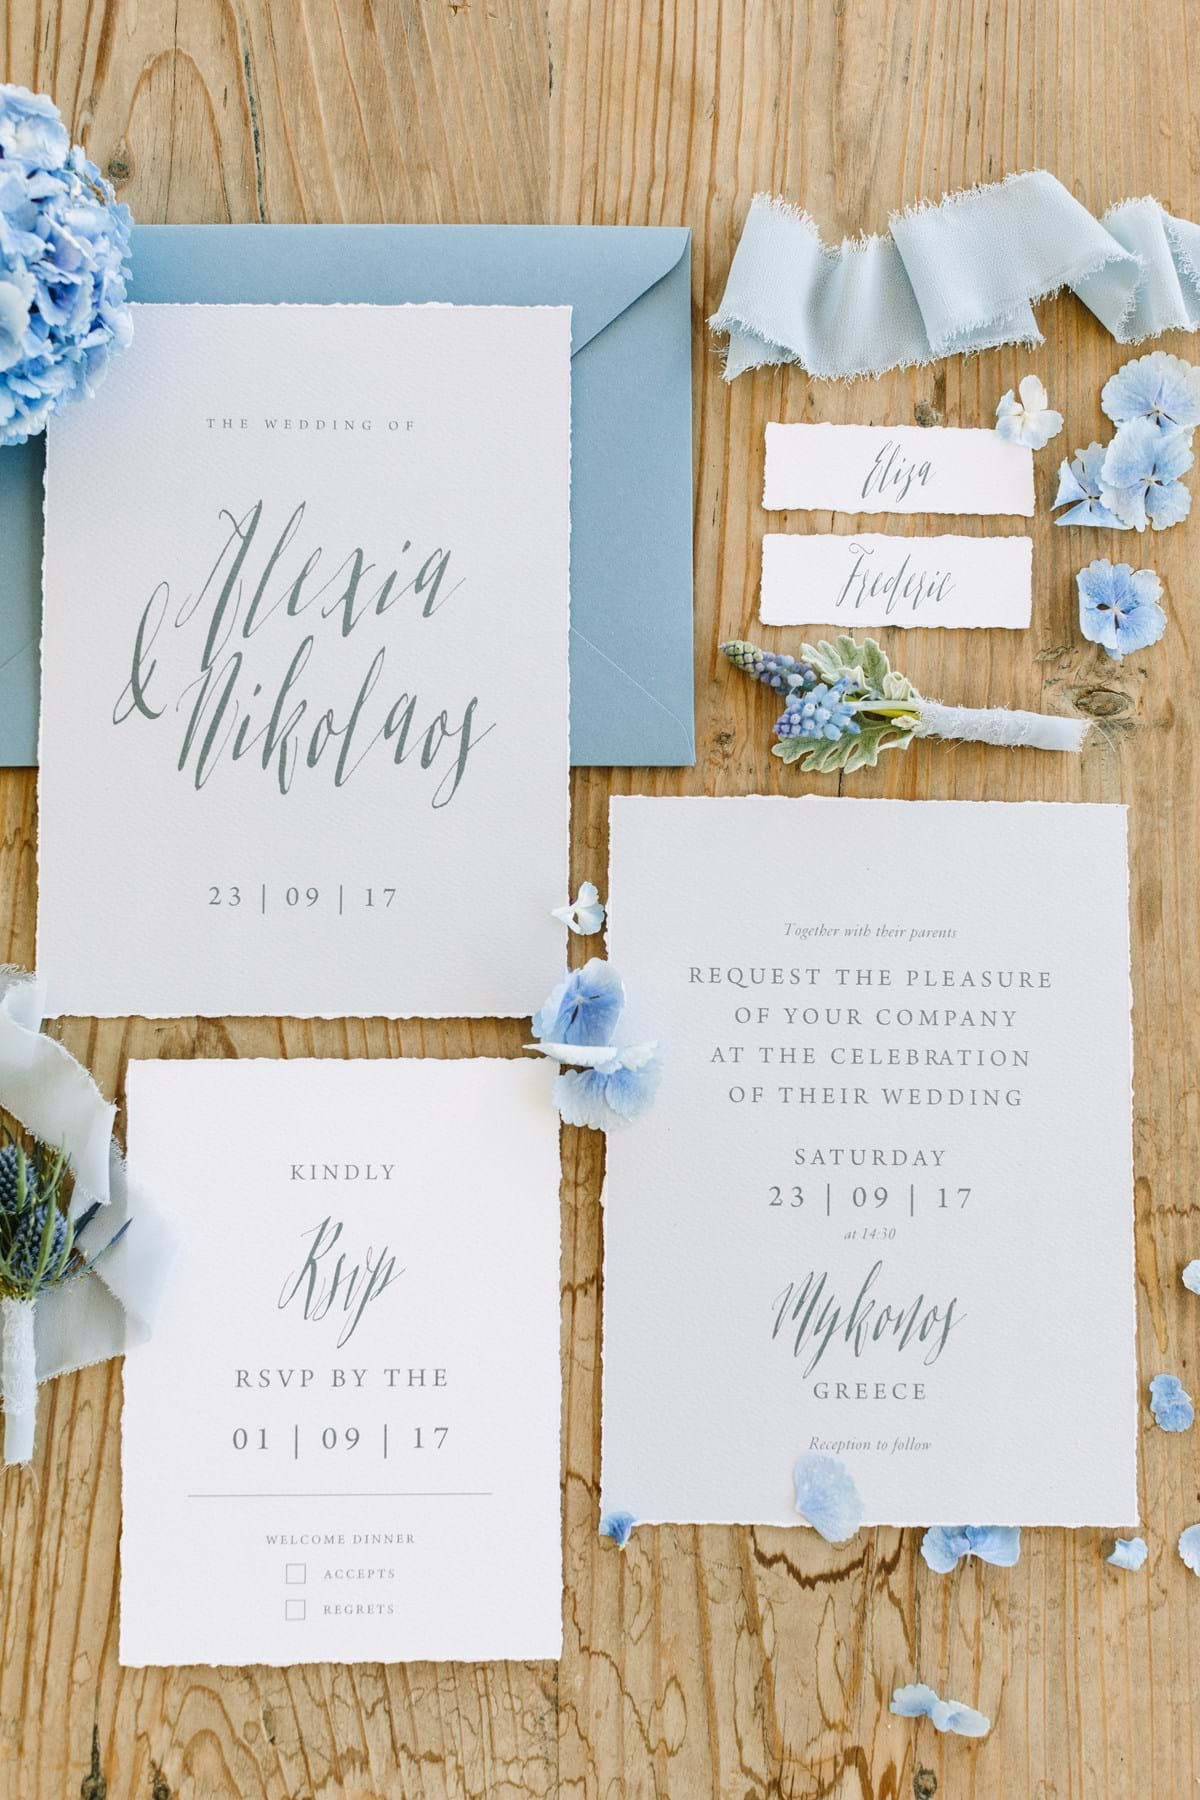 Unique Bohemian-Chic Destination Wedding Invitation & Stationery in Dusty Blue for a Mykonos Island Beach Wedding